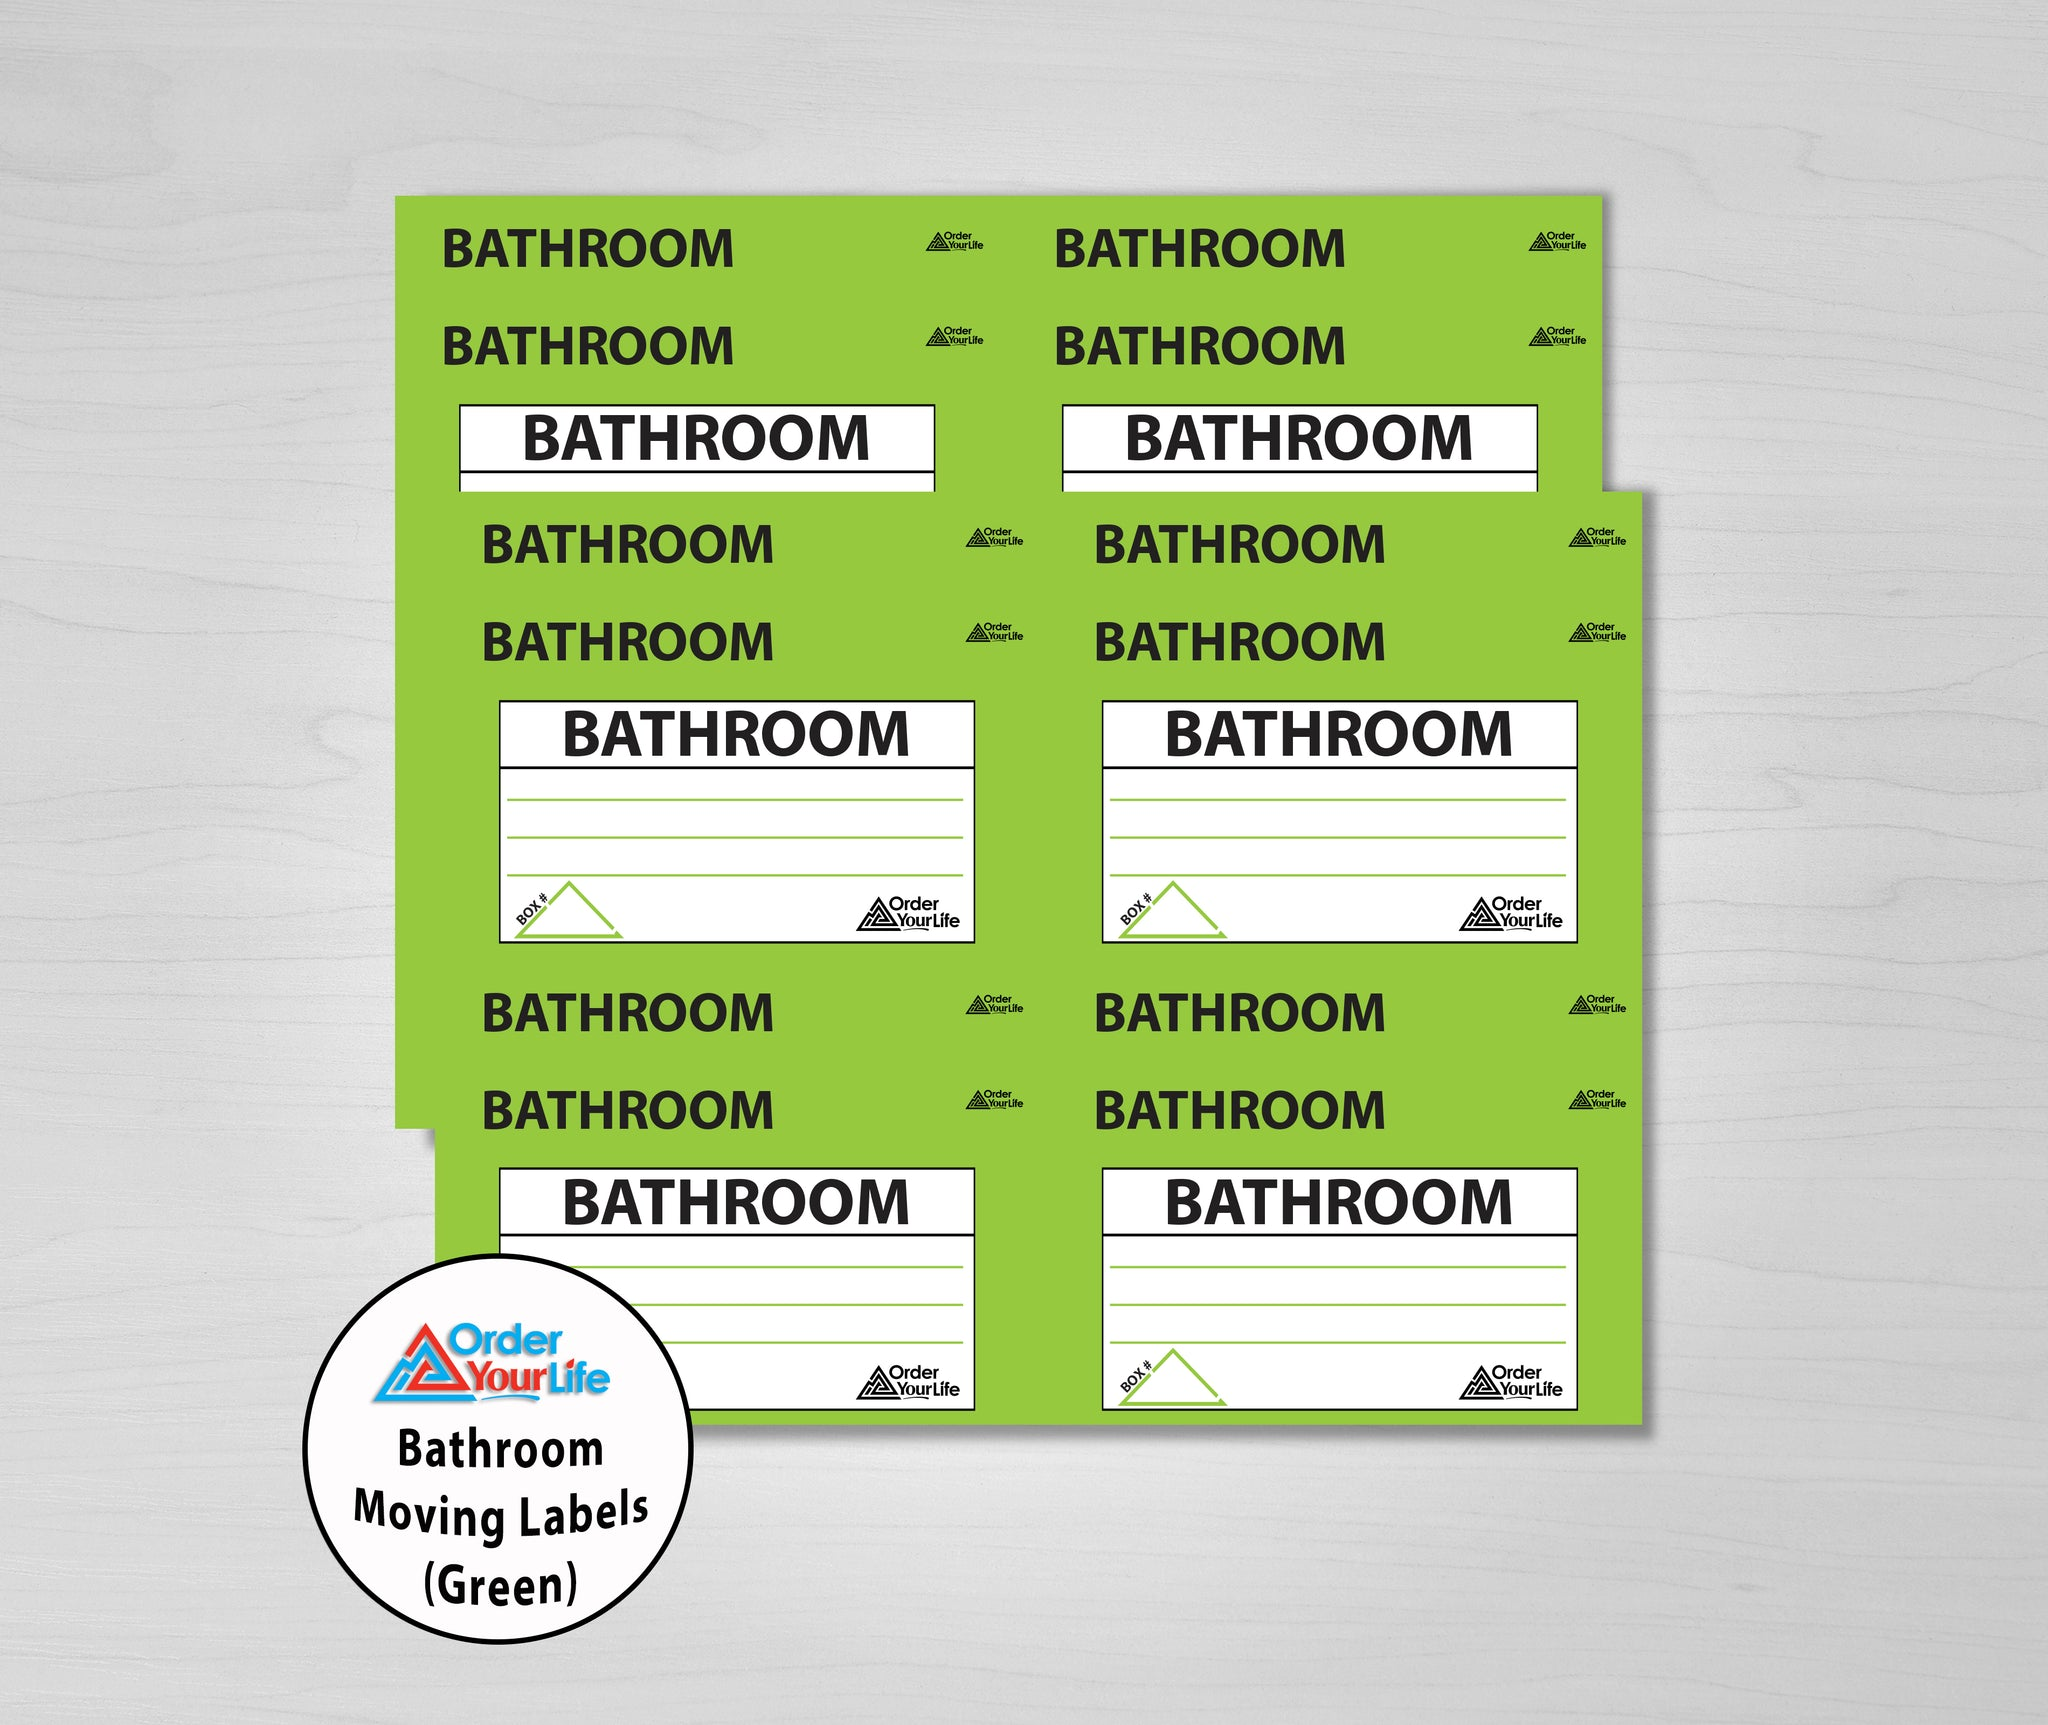 Bathroom Moving Labels (Green)